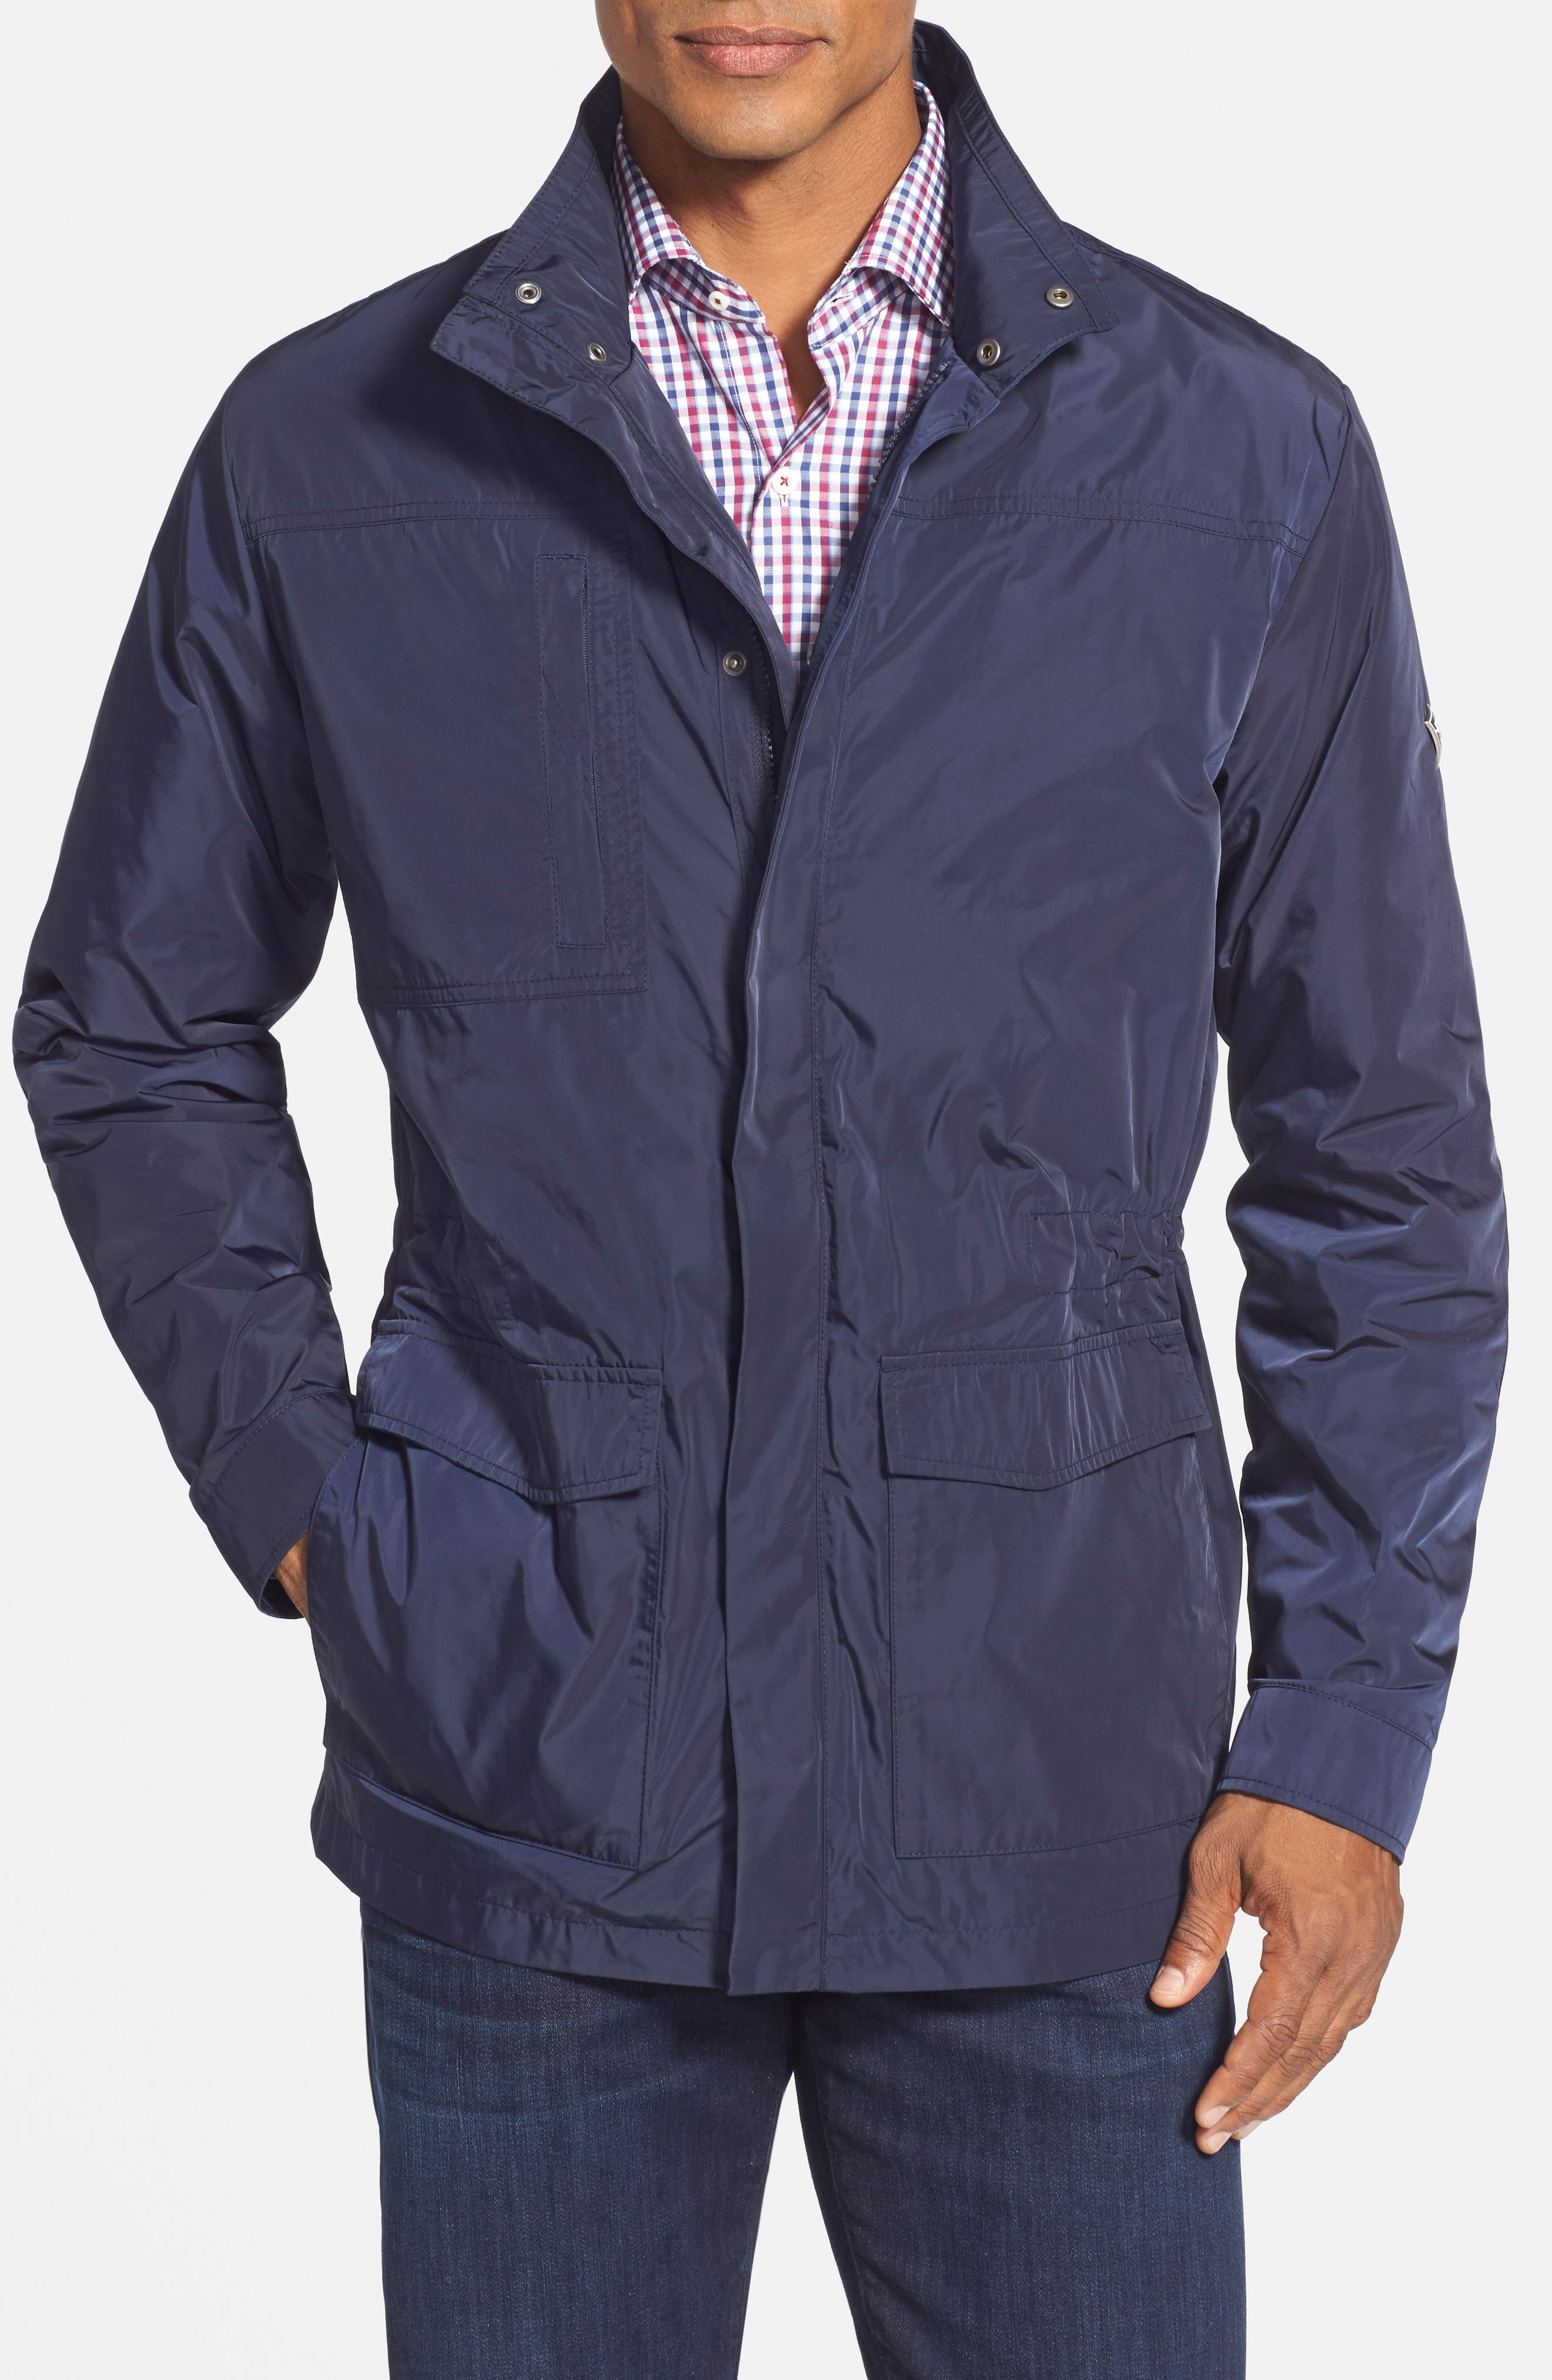 Birch Bay Water Resistant Jacket,                             Alternate thumbnail 5, color,                             493